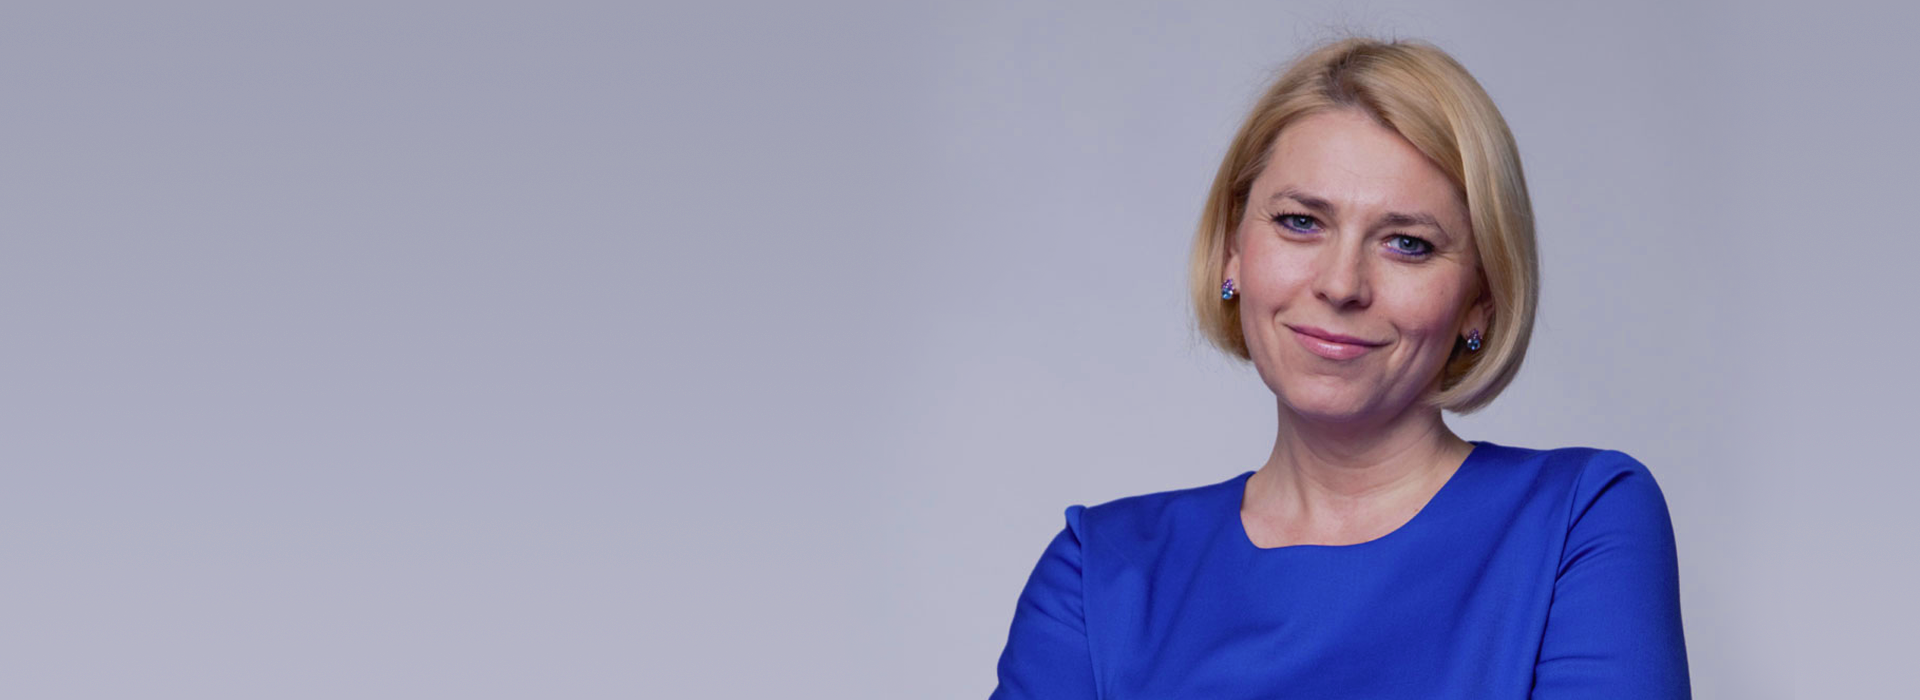 Alla Malinovskaya: If I would robber Fort Knox, I would invest in E-Commerce and content platforms